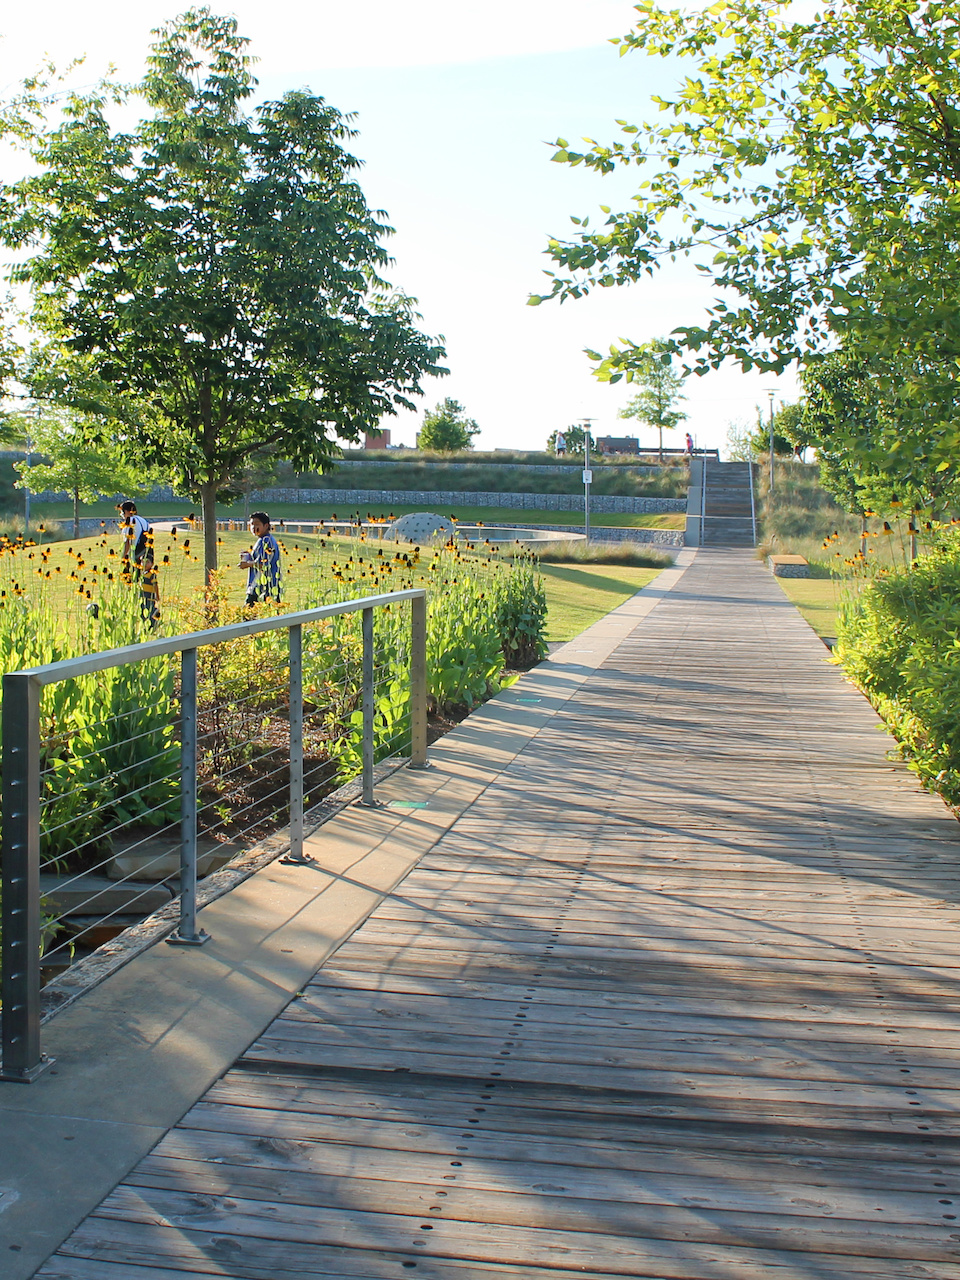 There are a variety of materials used on the walkways and play areas.